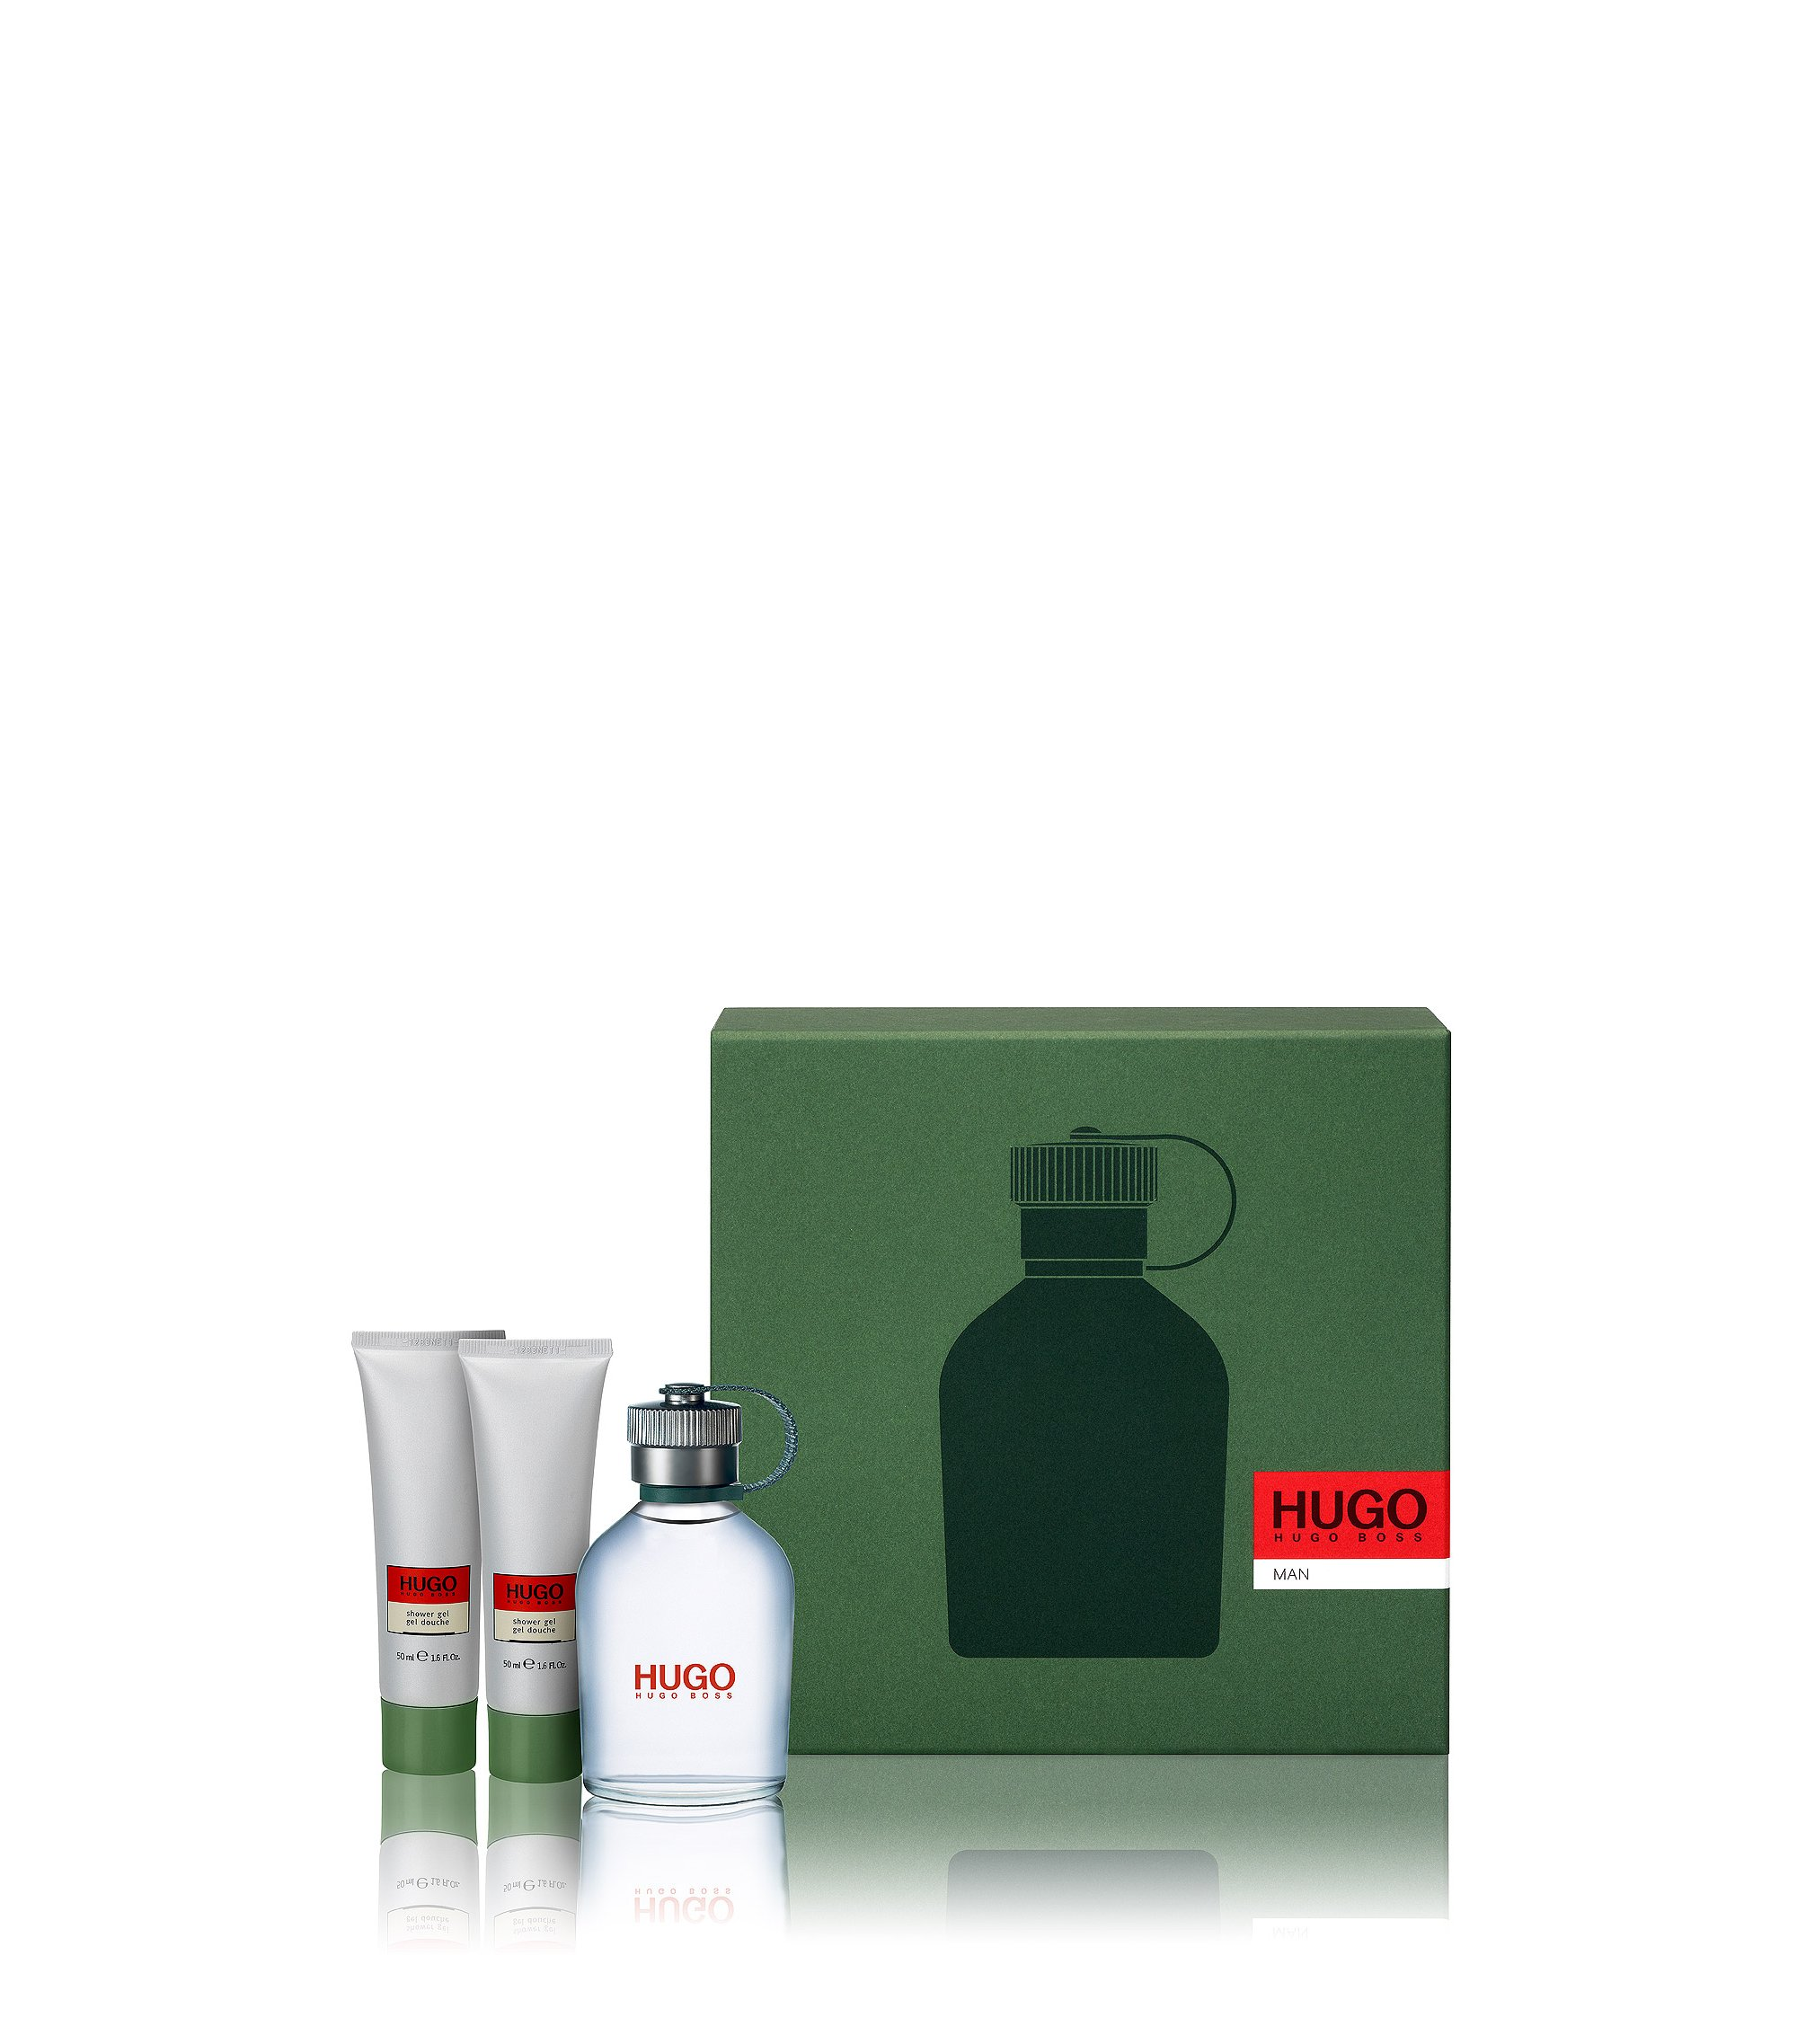 Idea regalo 'HUGO Man' con Eau de Toilette 100 ml e gel doccia, Assorted-Pre-Pack